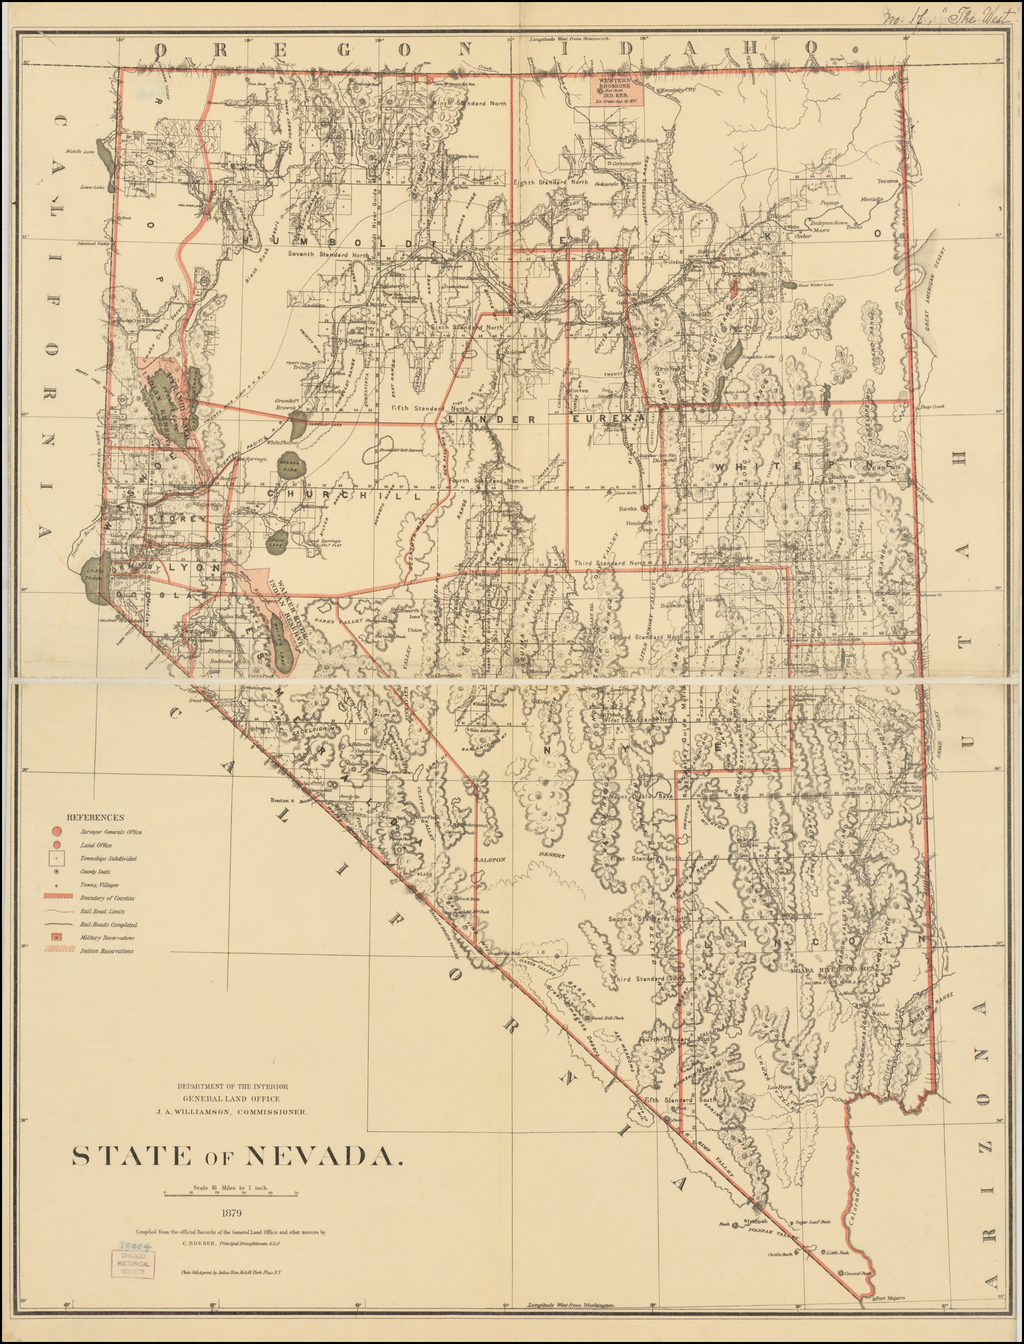 State of Nevada . . . 1879 By General Land Office